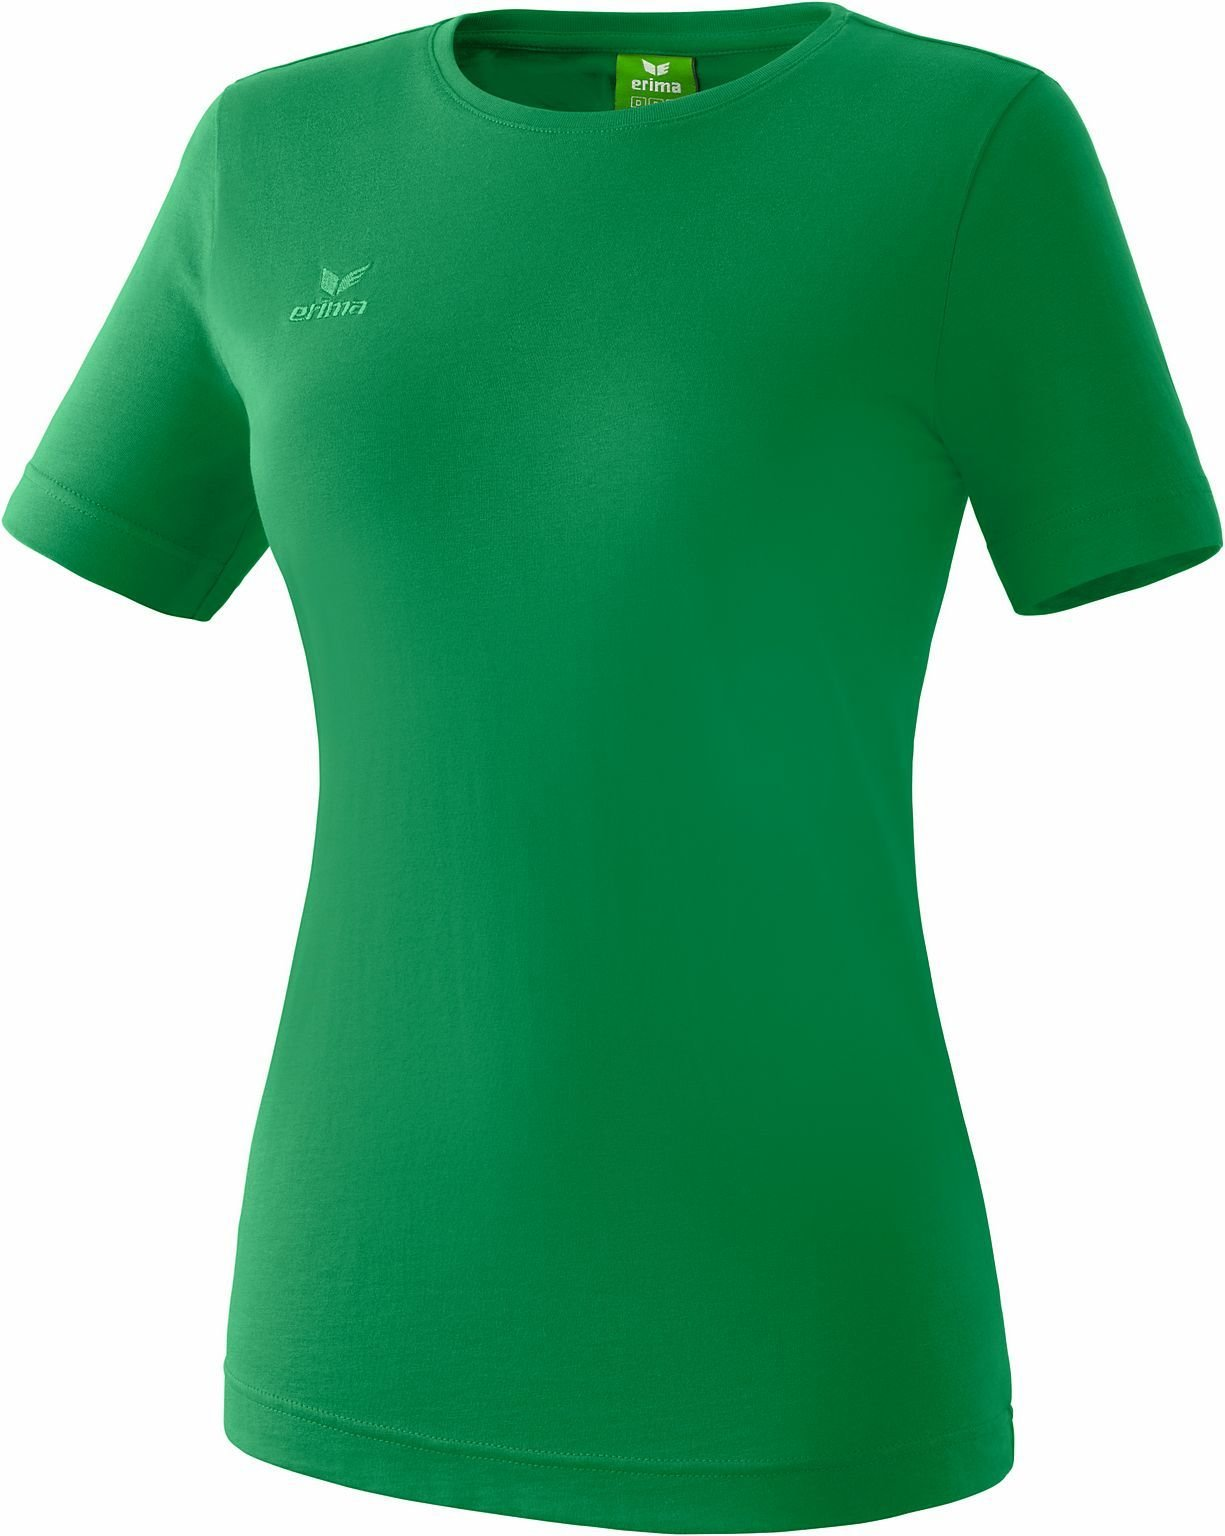 Teamsport T-Shirt Damen